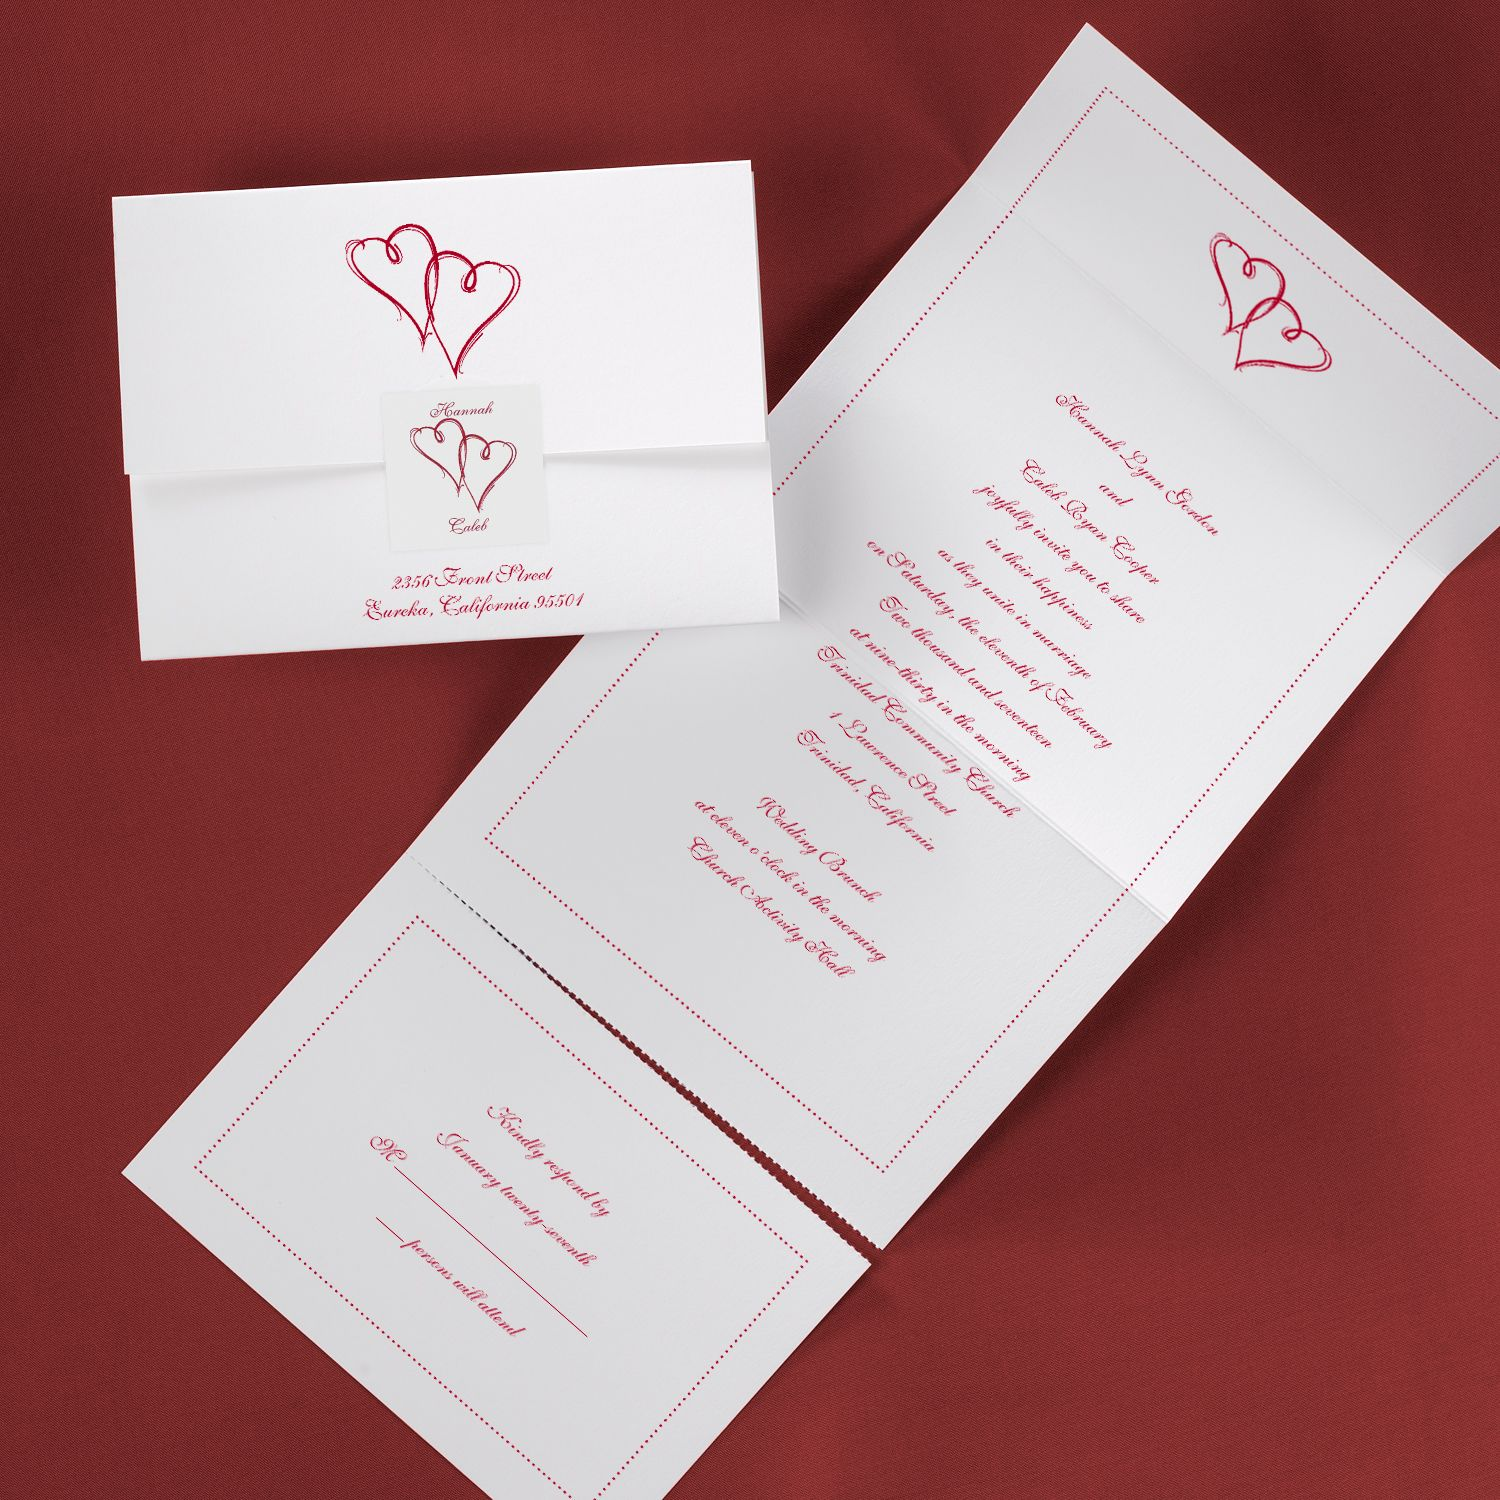 Dorable Wedding Invite Stationary Images - Invitations and ...